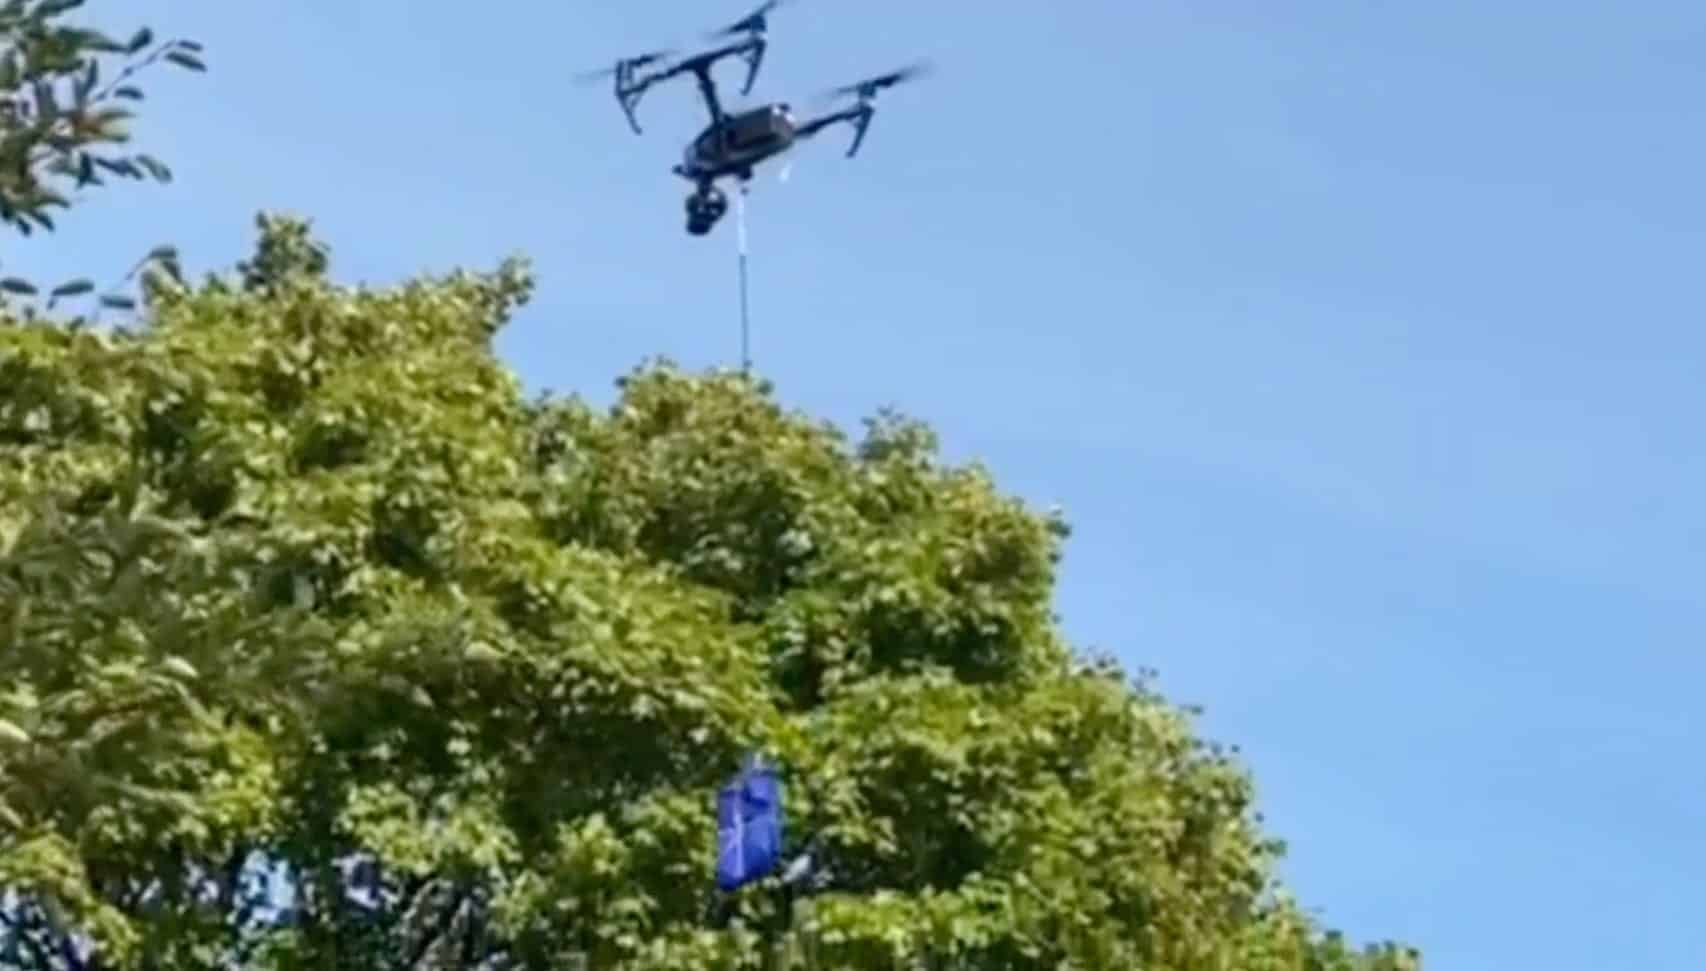 Walmart delivers first COVID-19 test kit by drone in New York